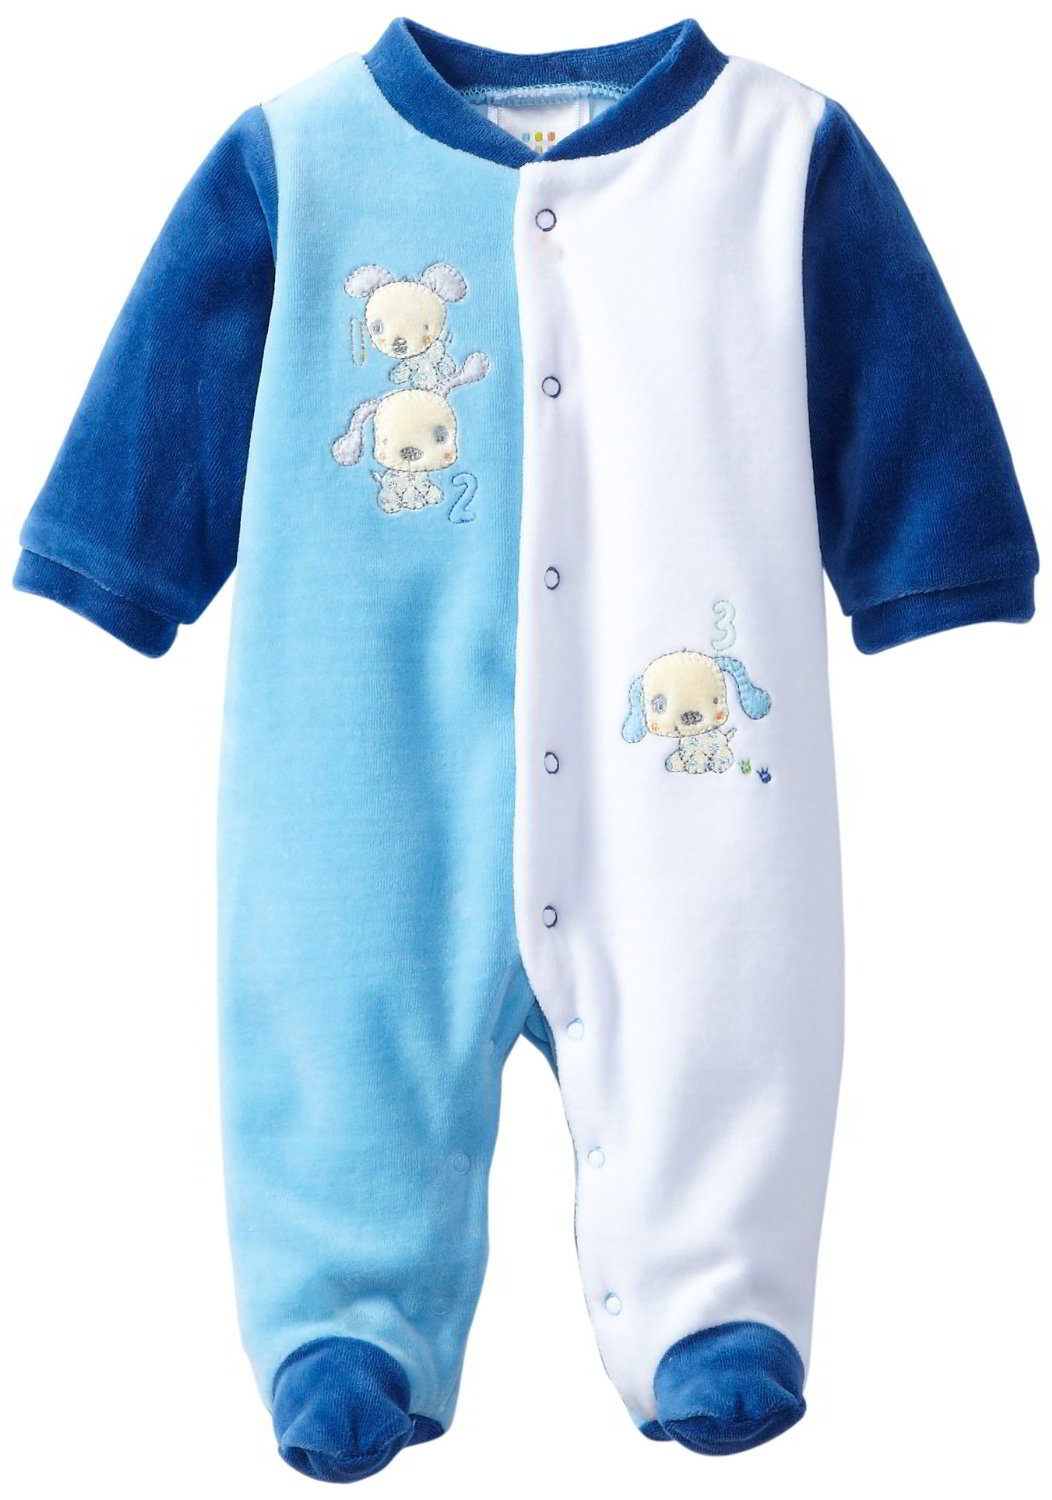 Baby Clothes For Cheap